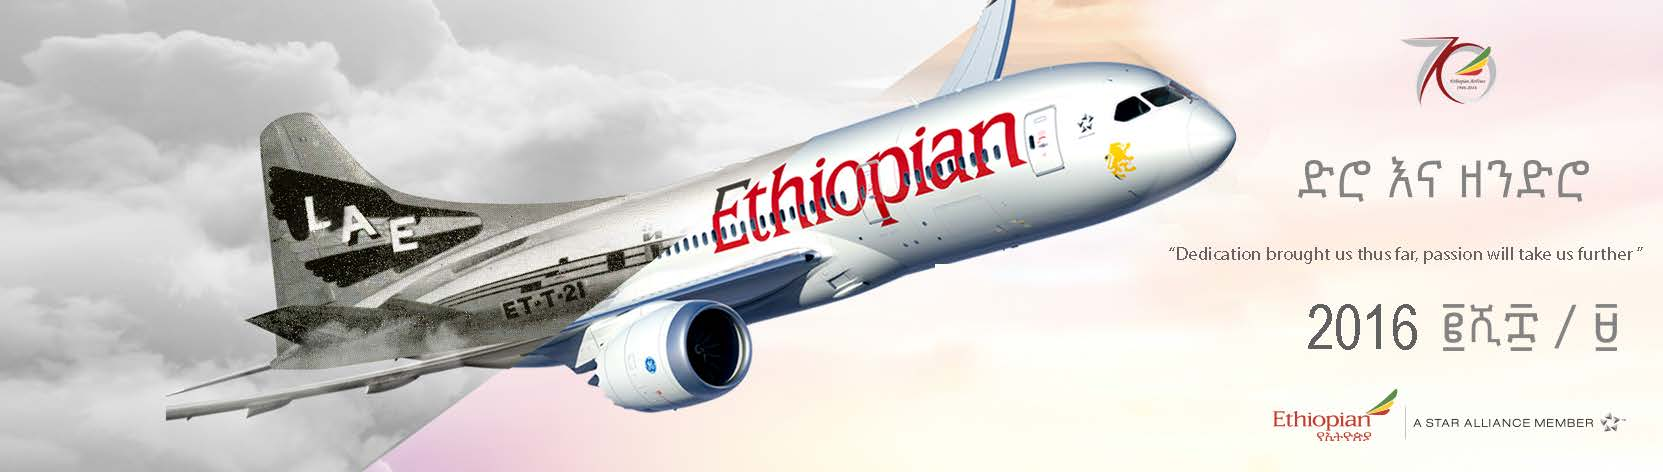 Ethiopia airlines history